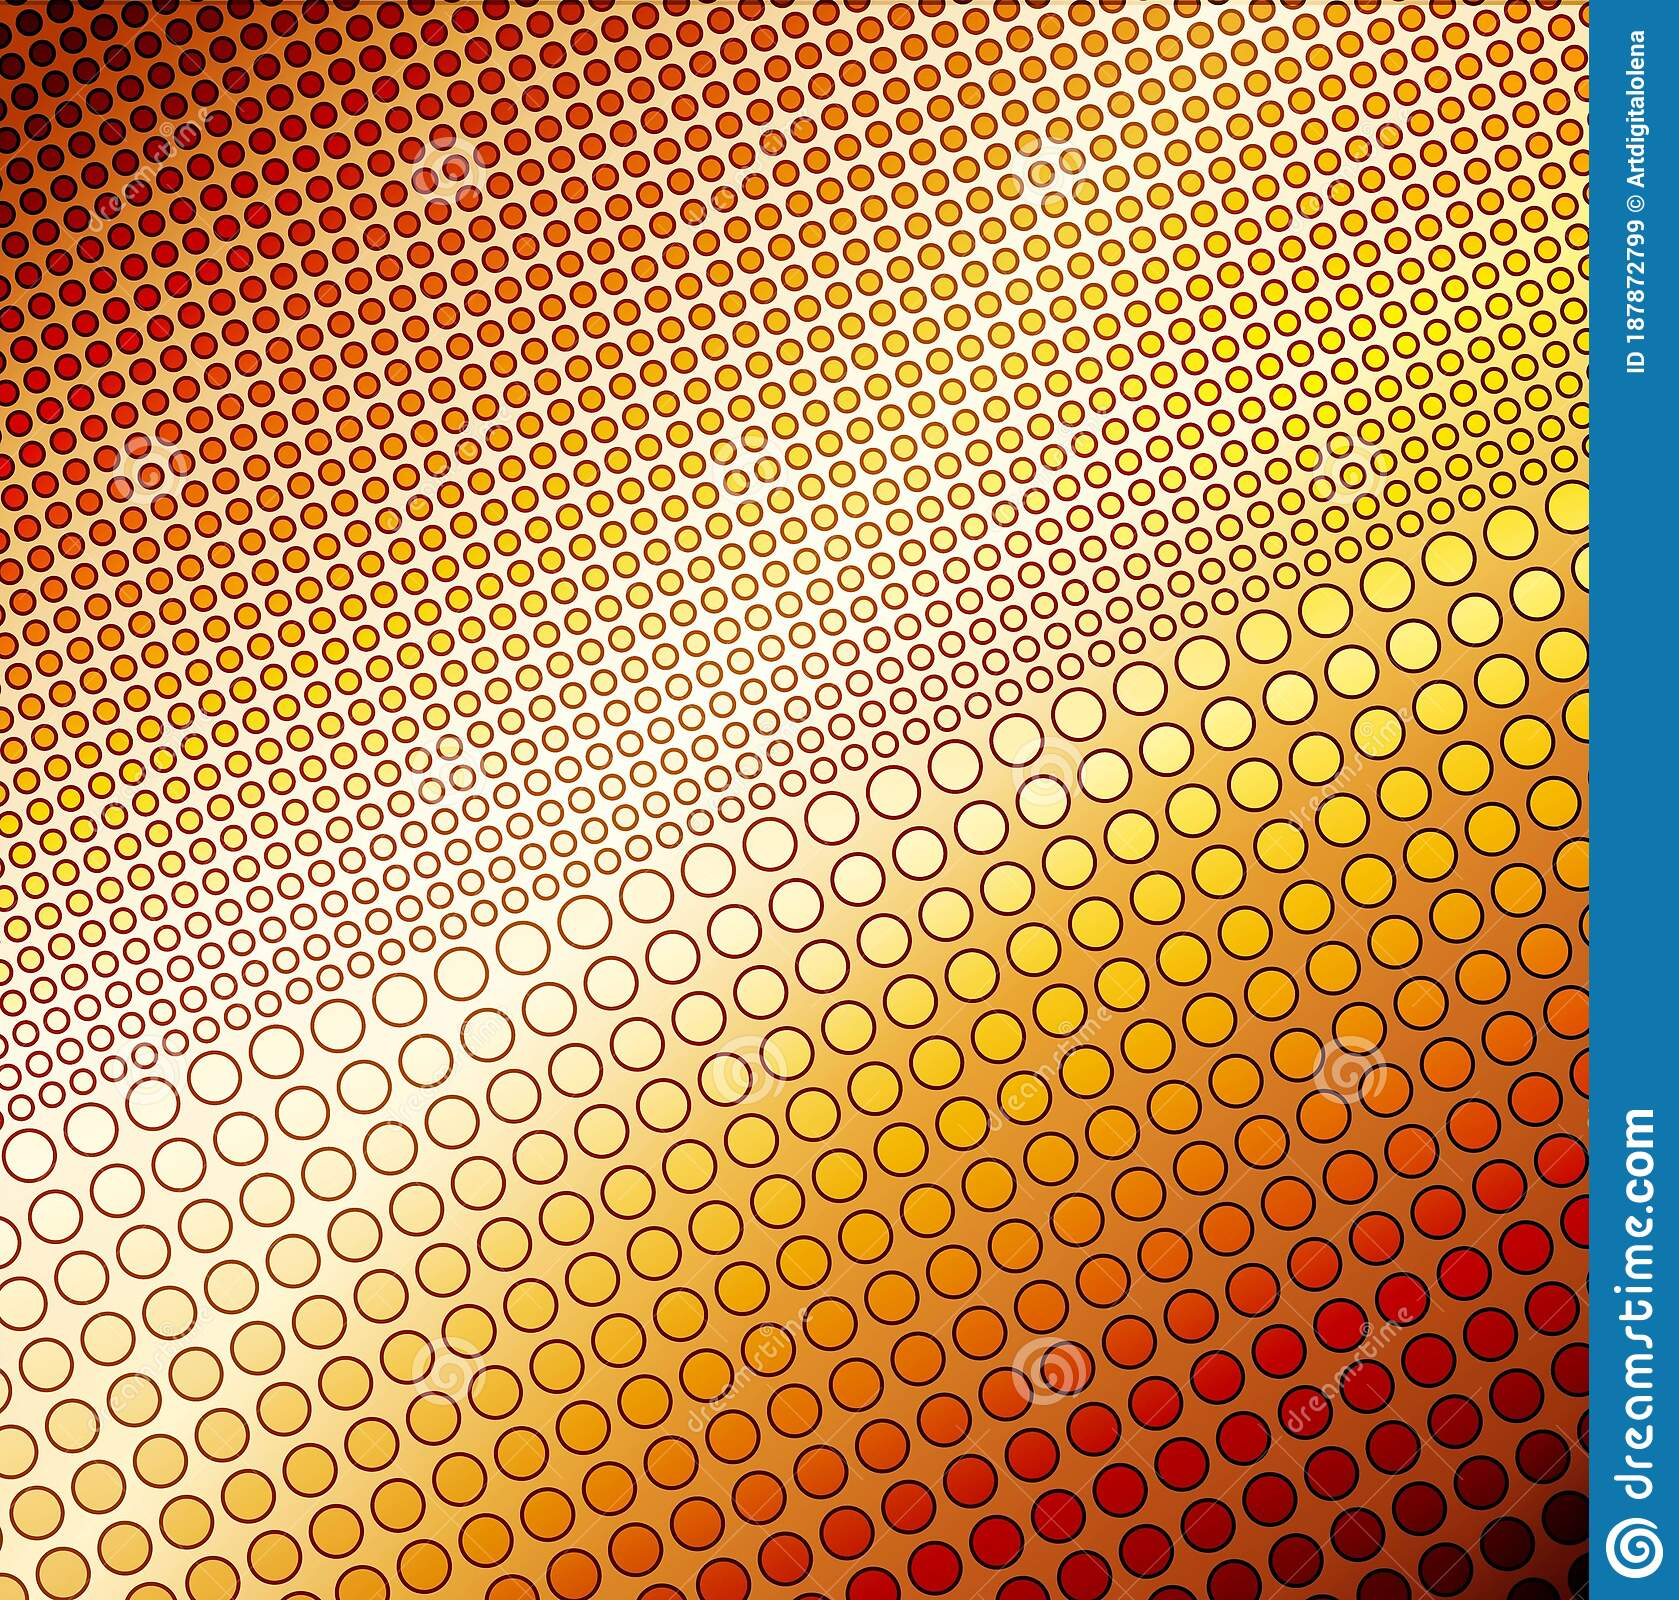 Abstract Background With Honeycomb Stock Illustration